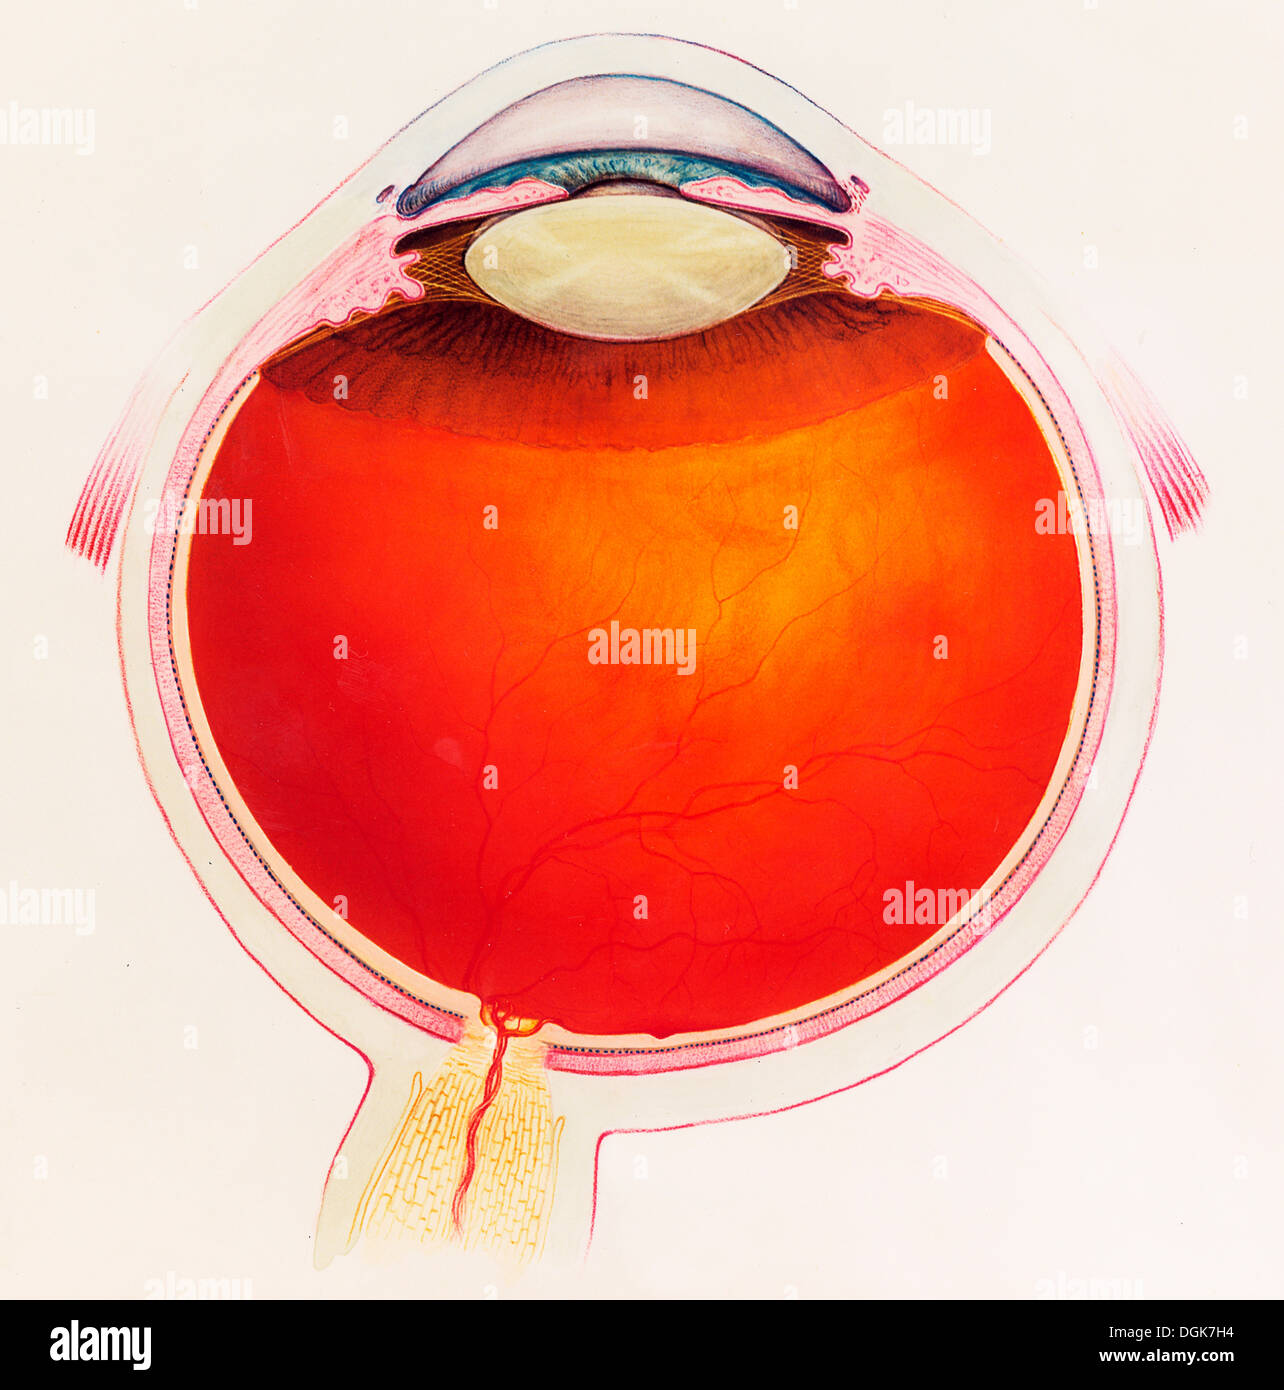 Human Eye Diagram Stock Photos Images Alamy Diagrammatic Cross Section Of The Image